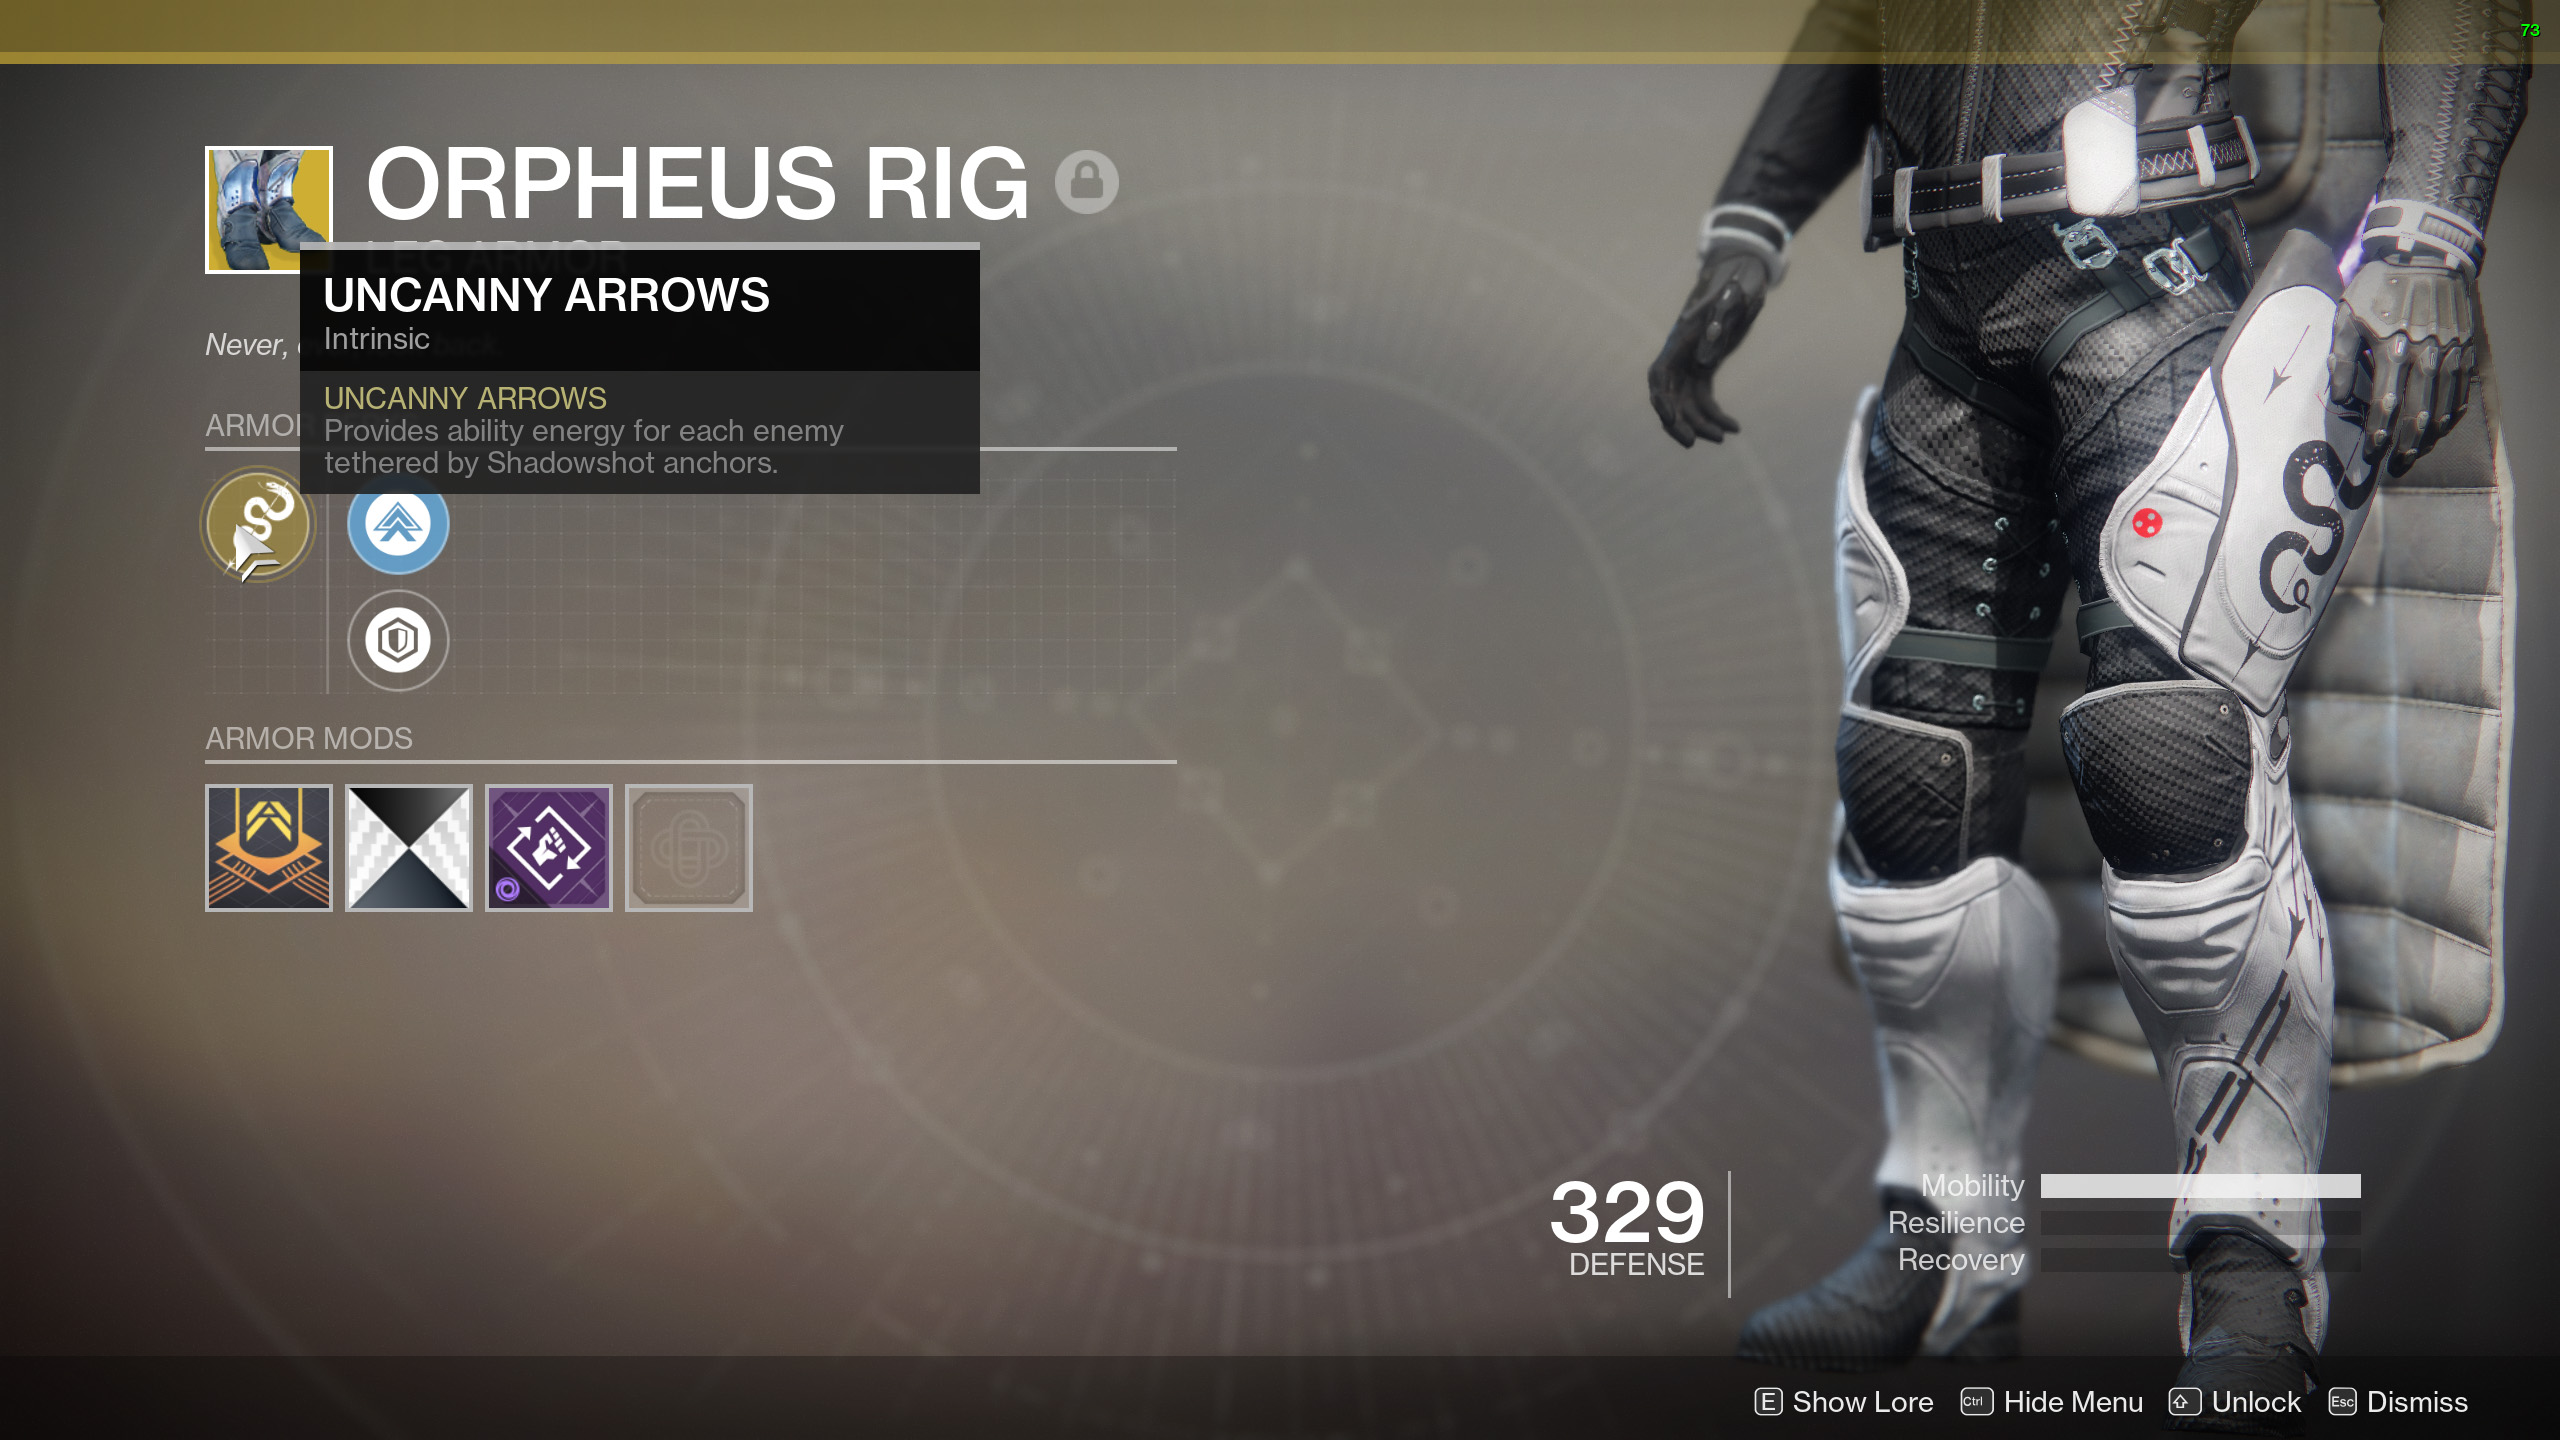 Orpheus Rig Exotic Hunter Boots